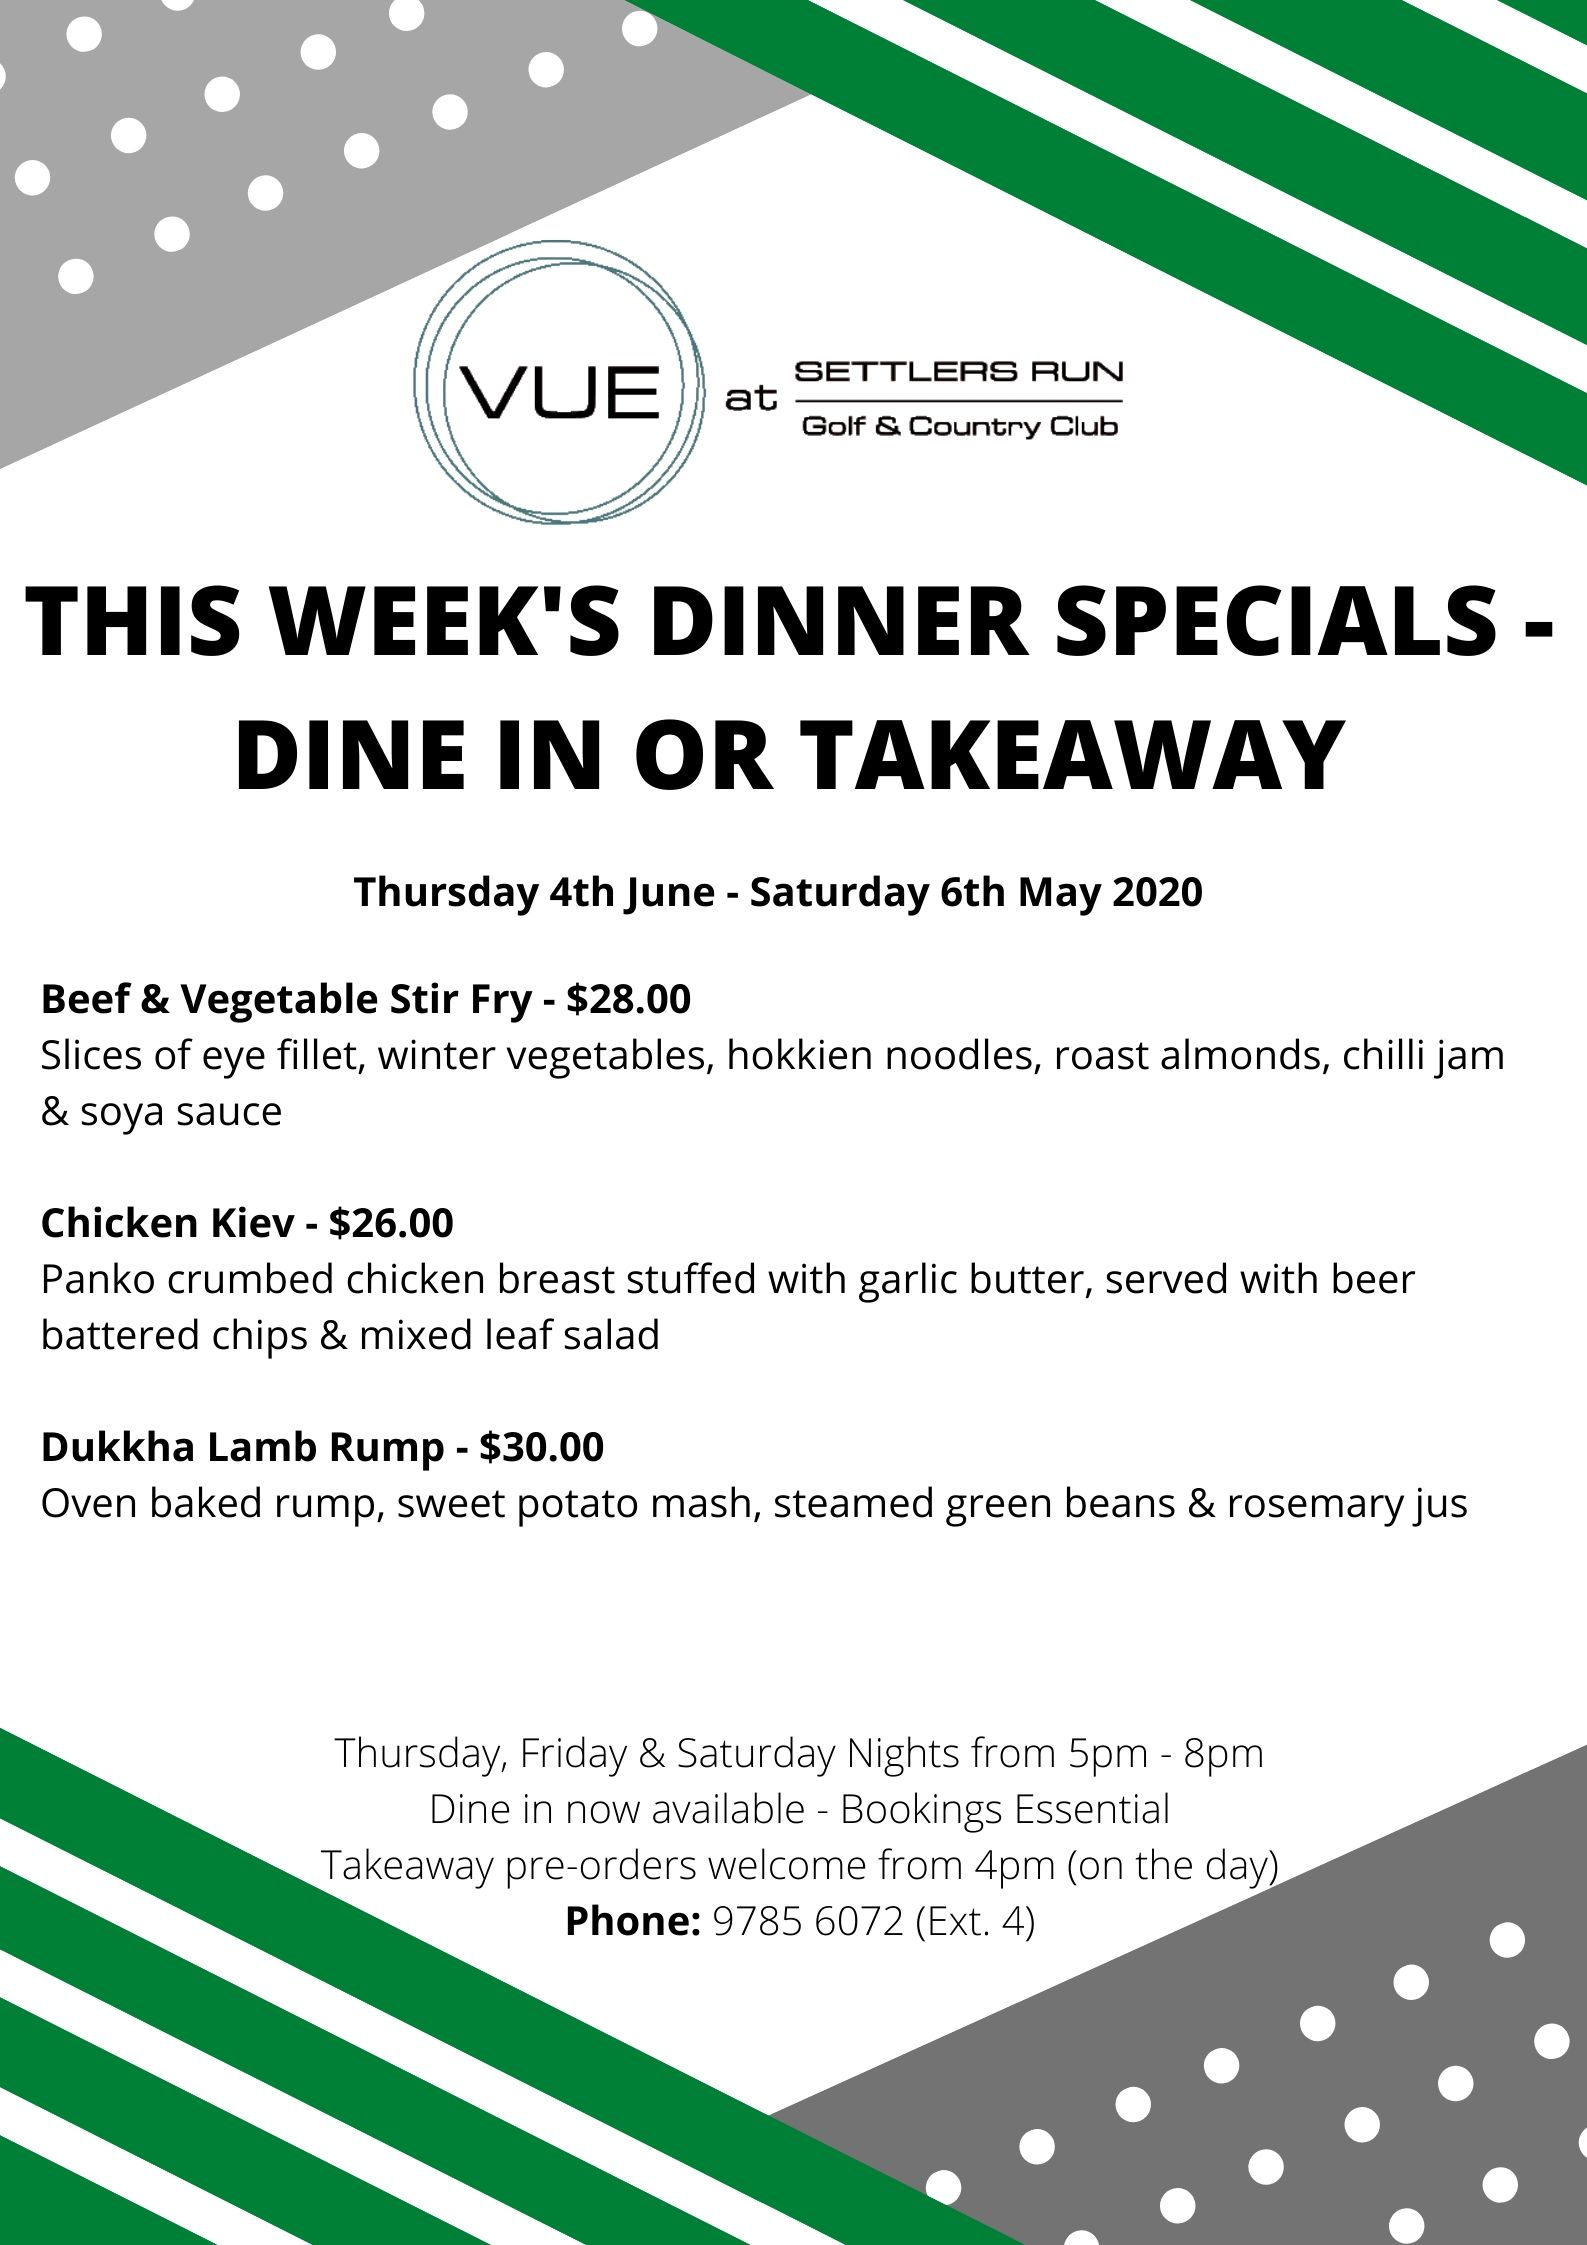 This Week's Take Away Specials